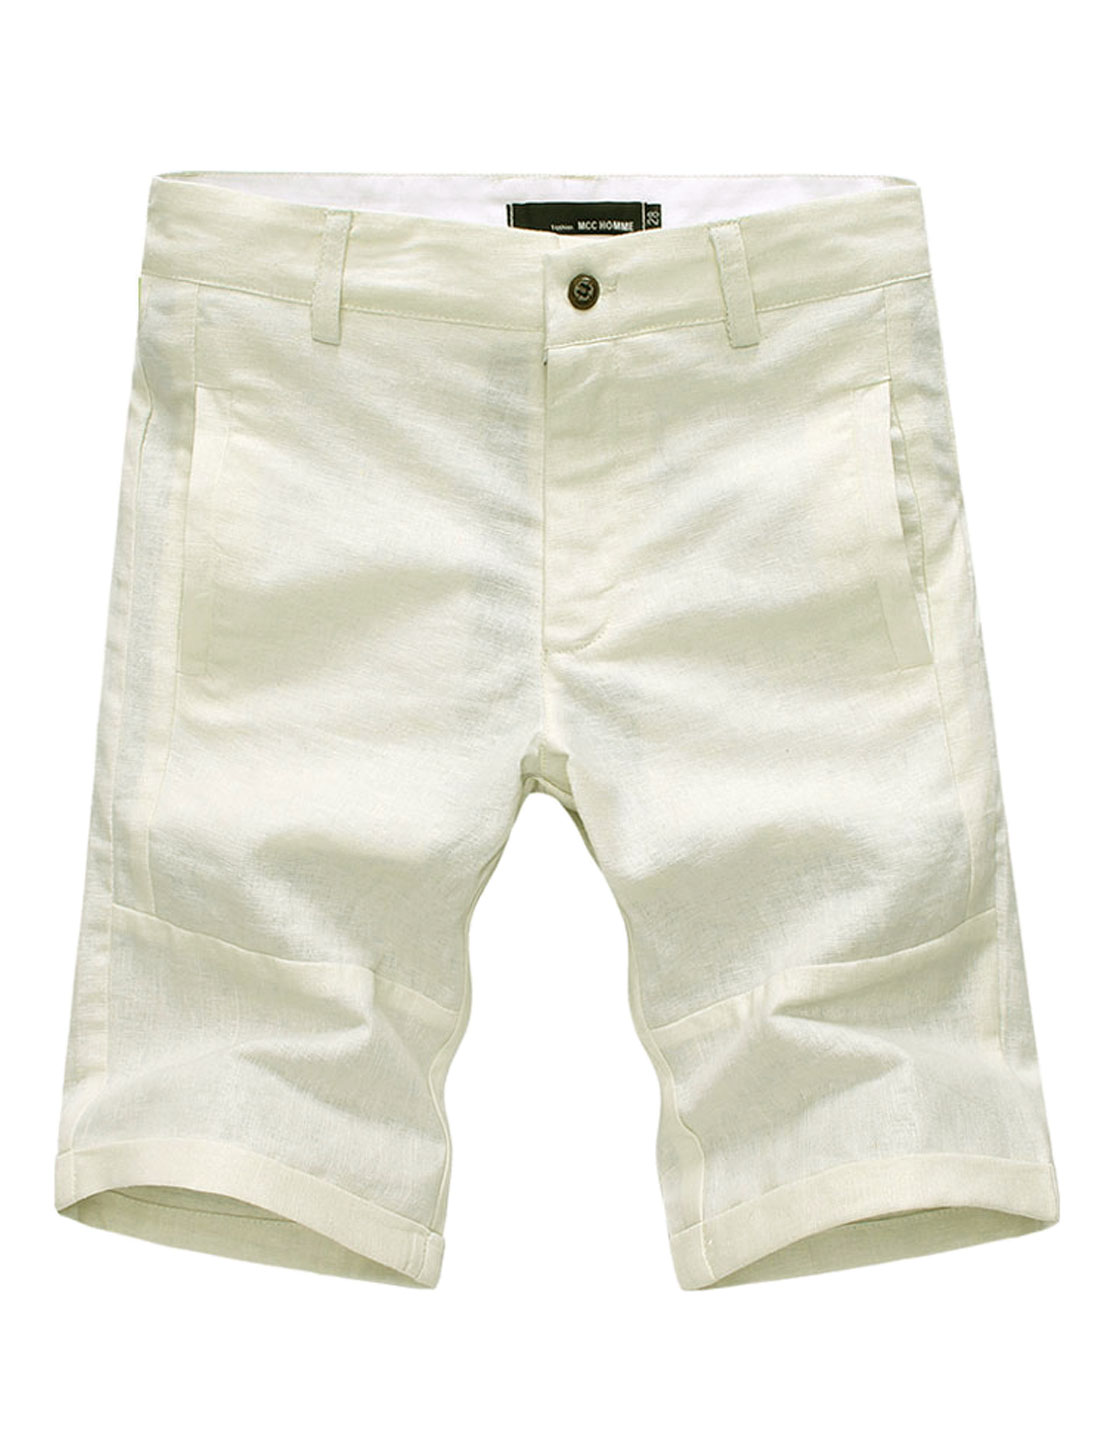 Men Roll Up Cuffs Two Fake Welt Pockets Back NEW Linen Shorts Beige W34